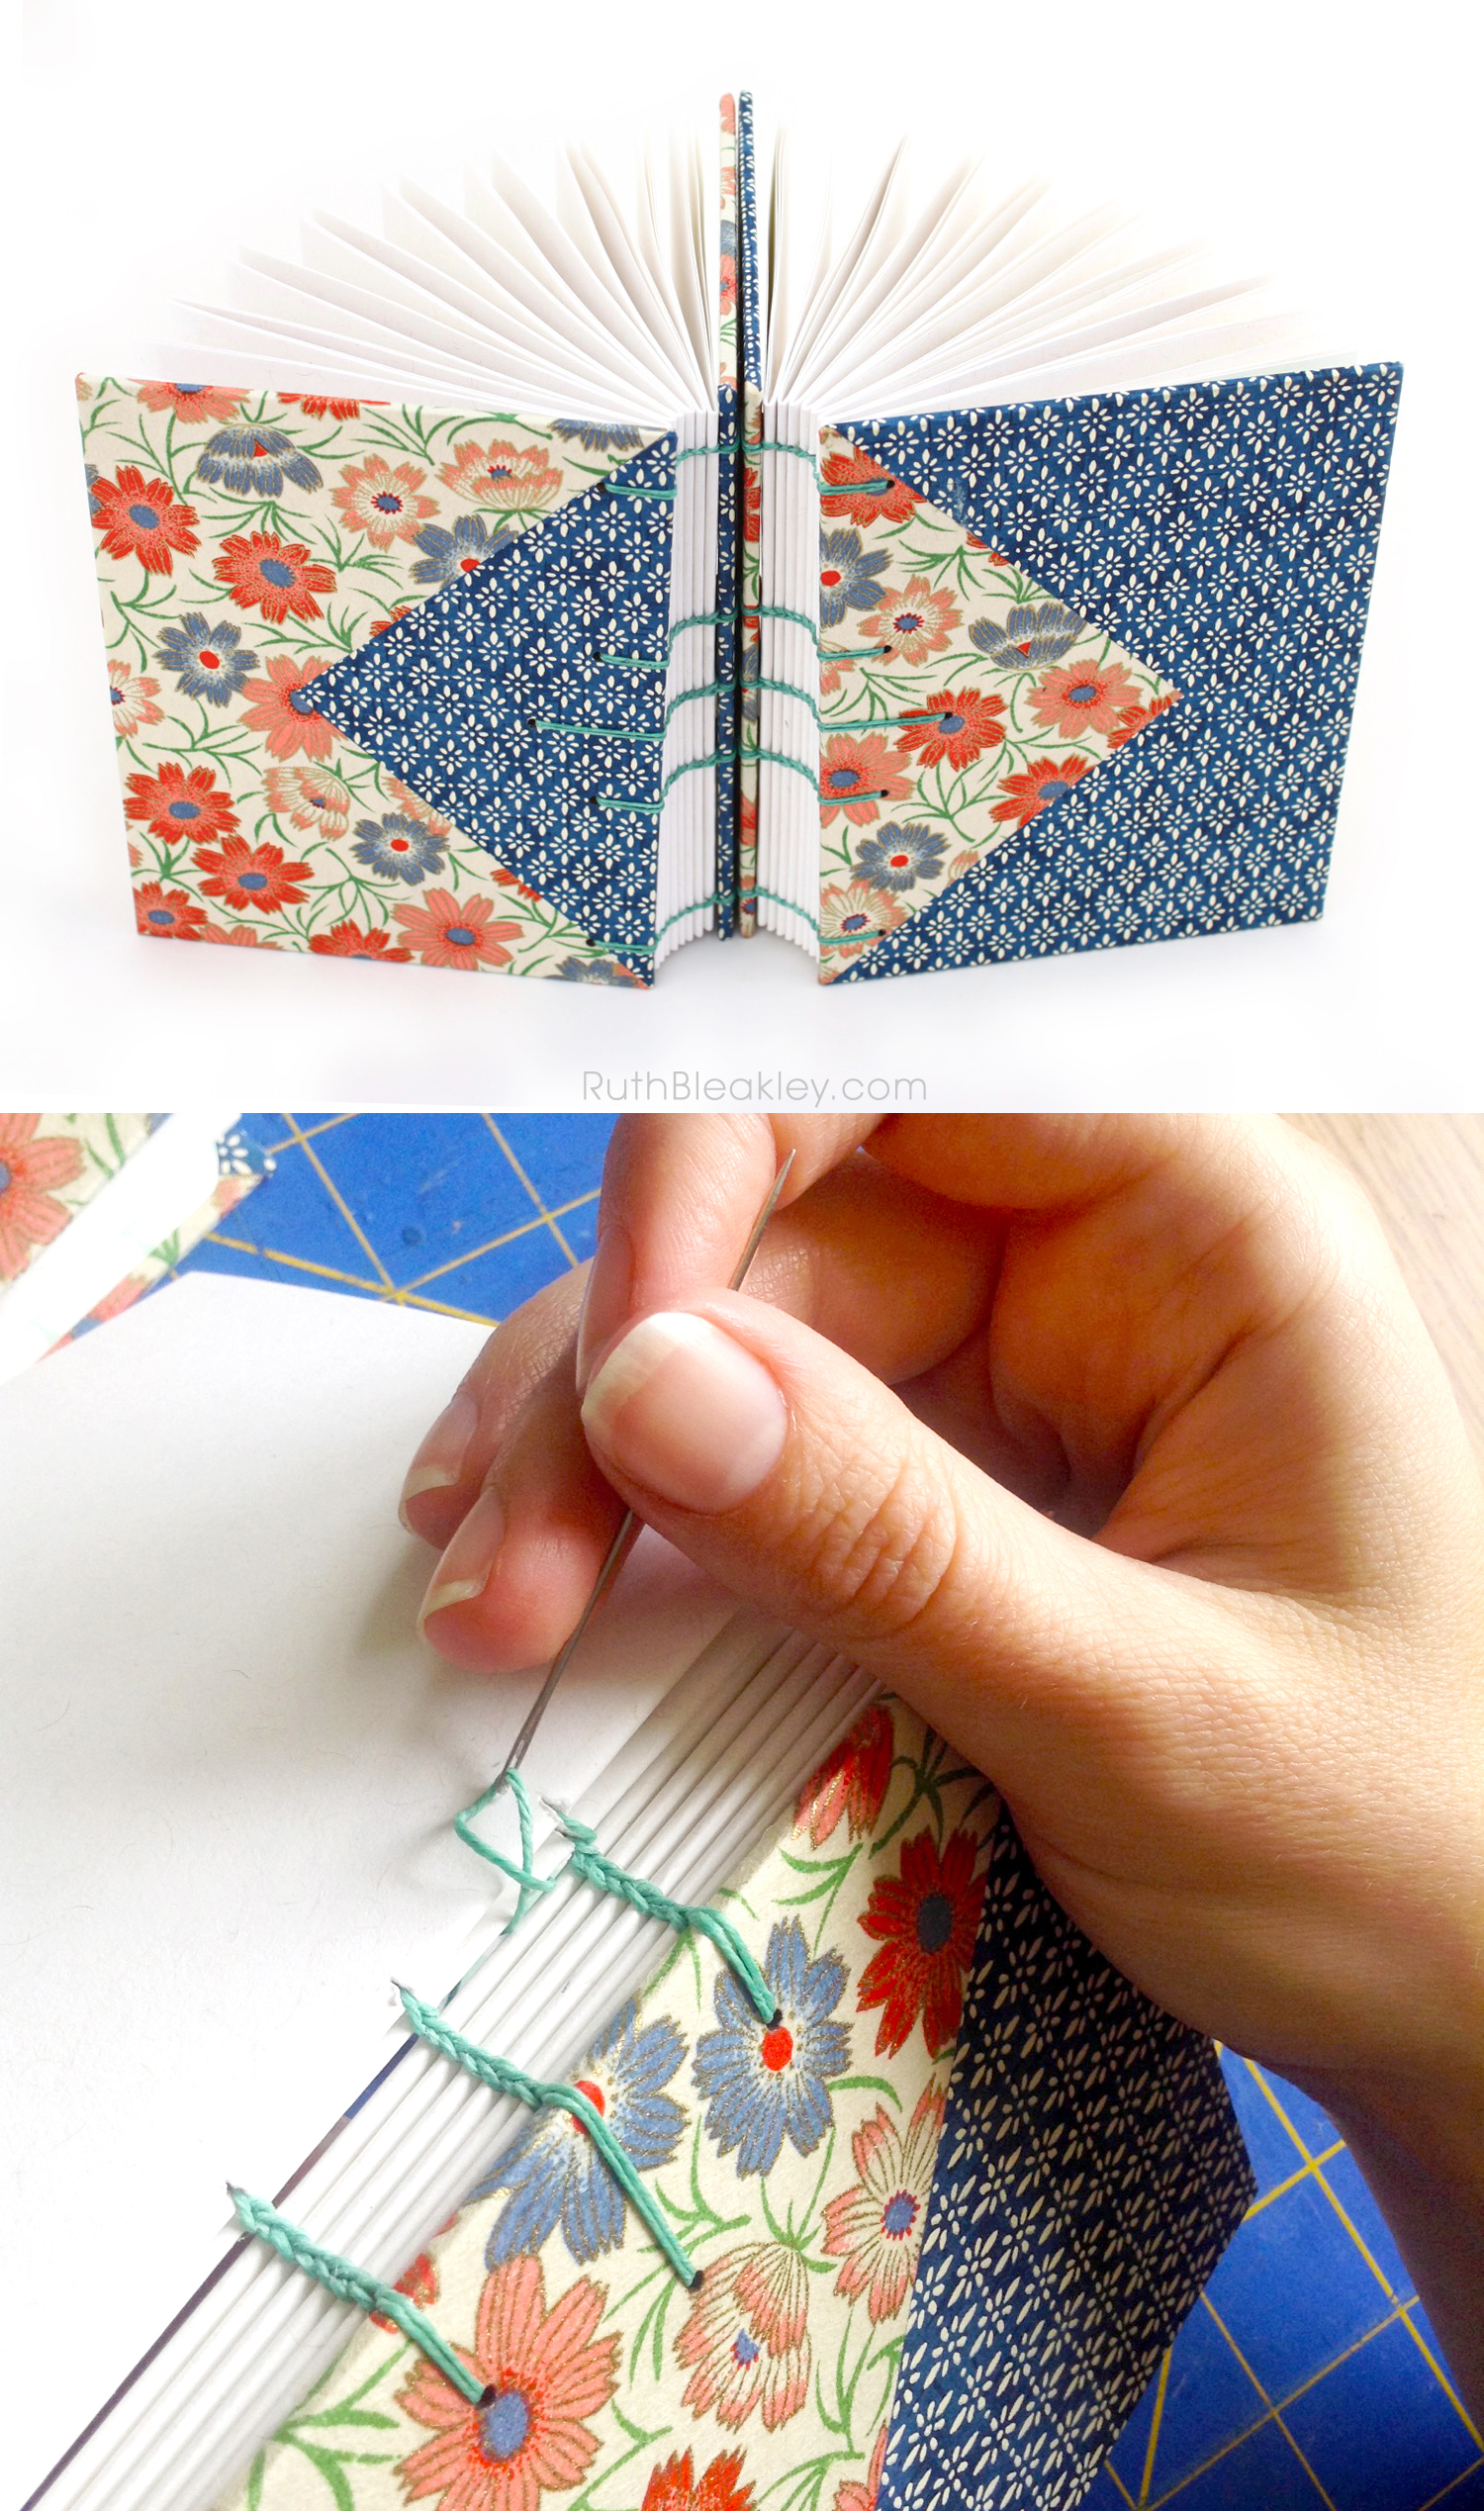 Hand Stitched Journals - these journals are twins and us the same paper - made by Ruth Bleakley